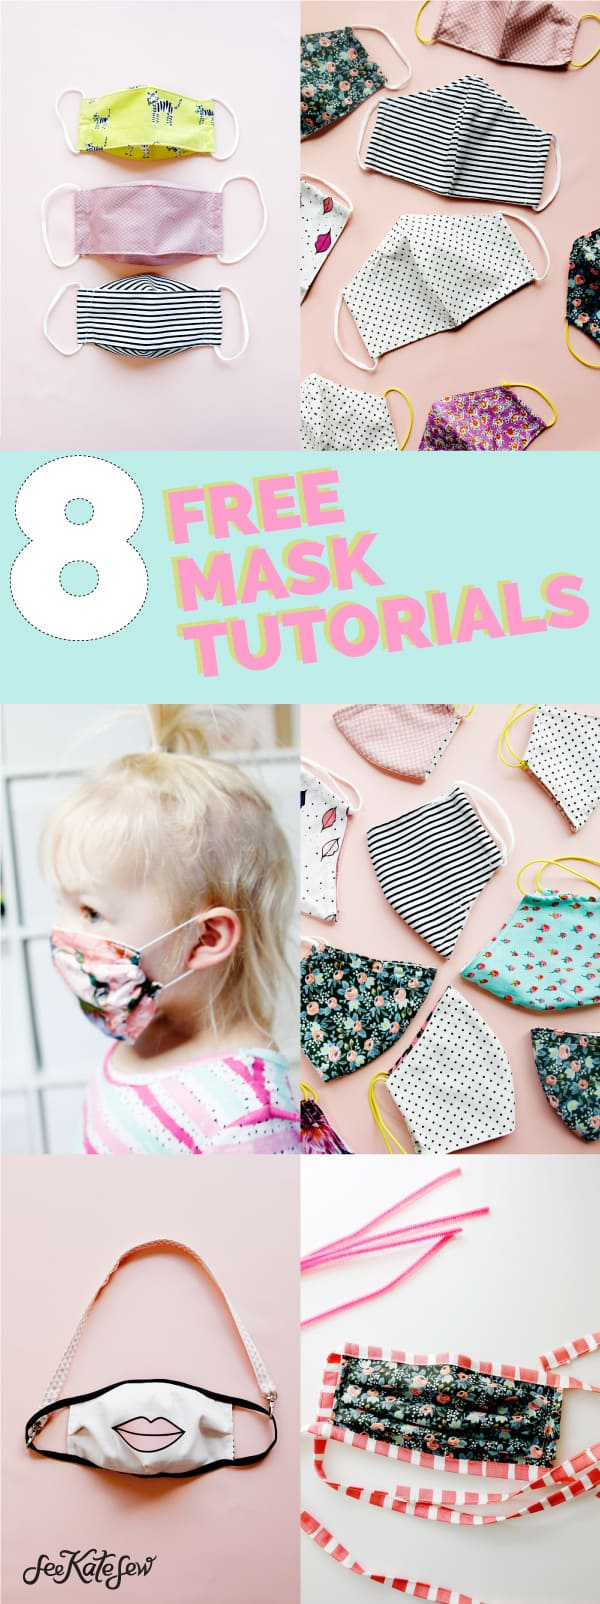 face mask sewing tutorials